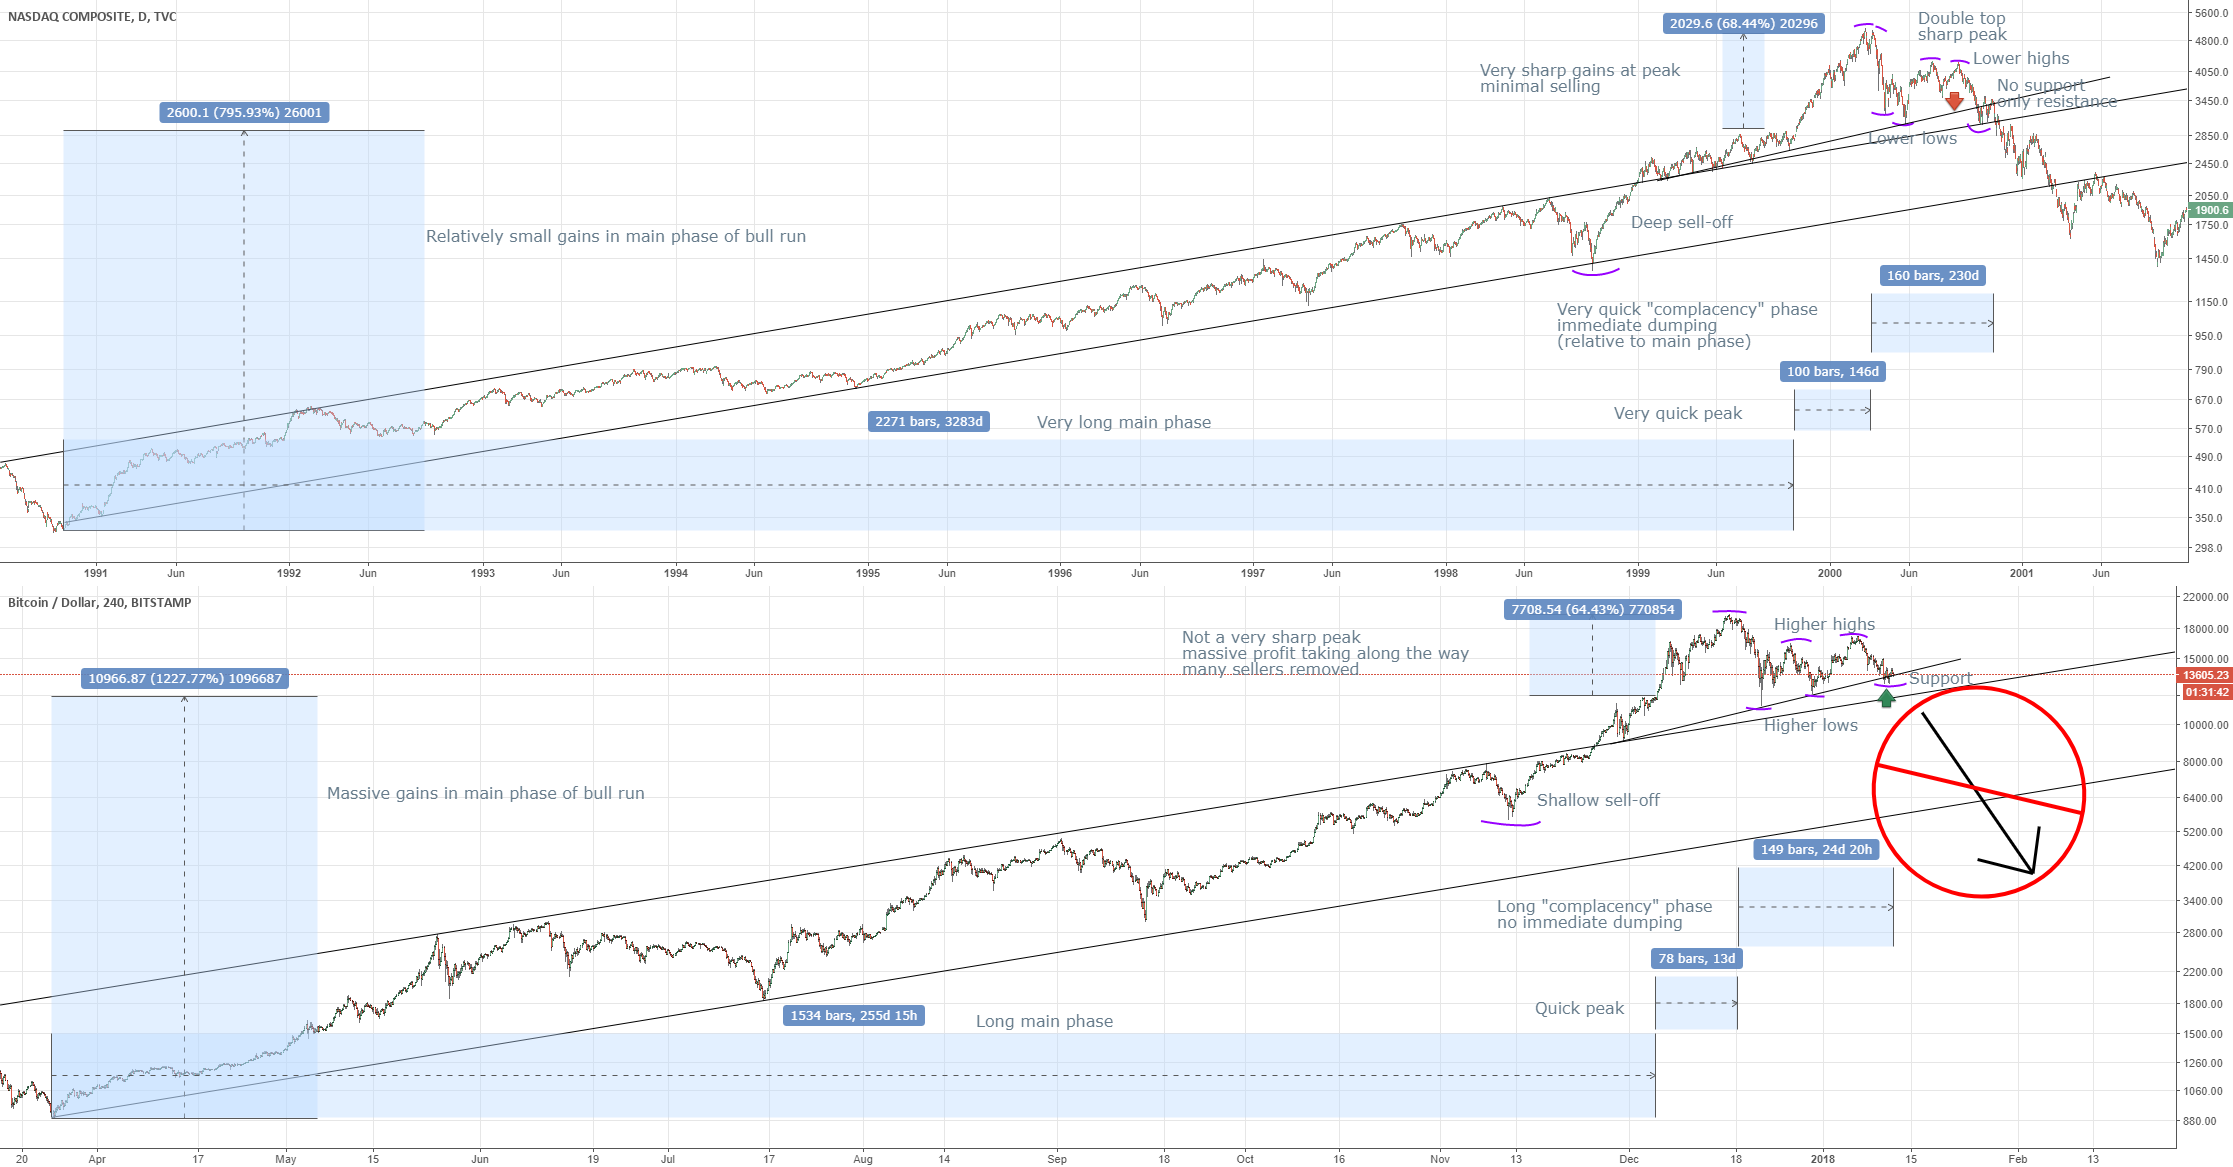 The btc bubble might have popped, but how likely is it really?